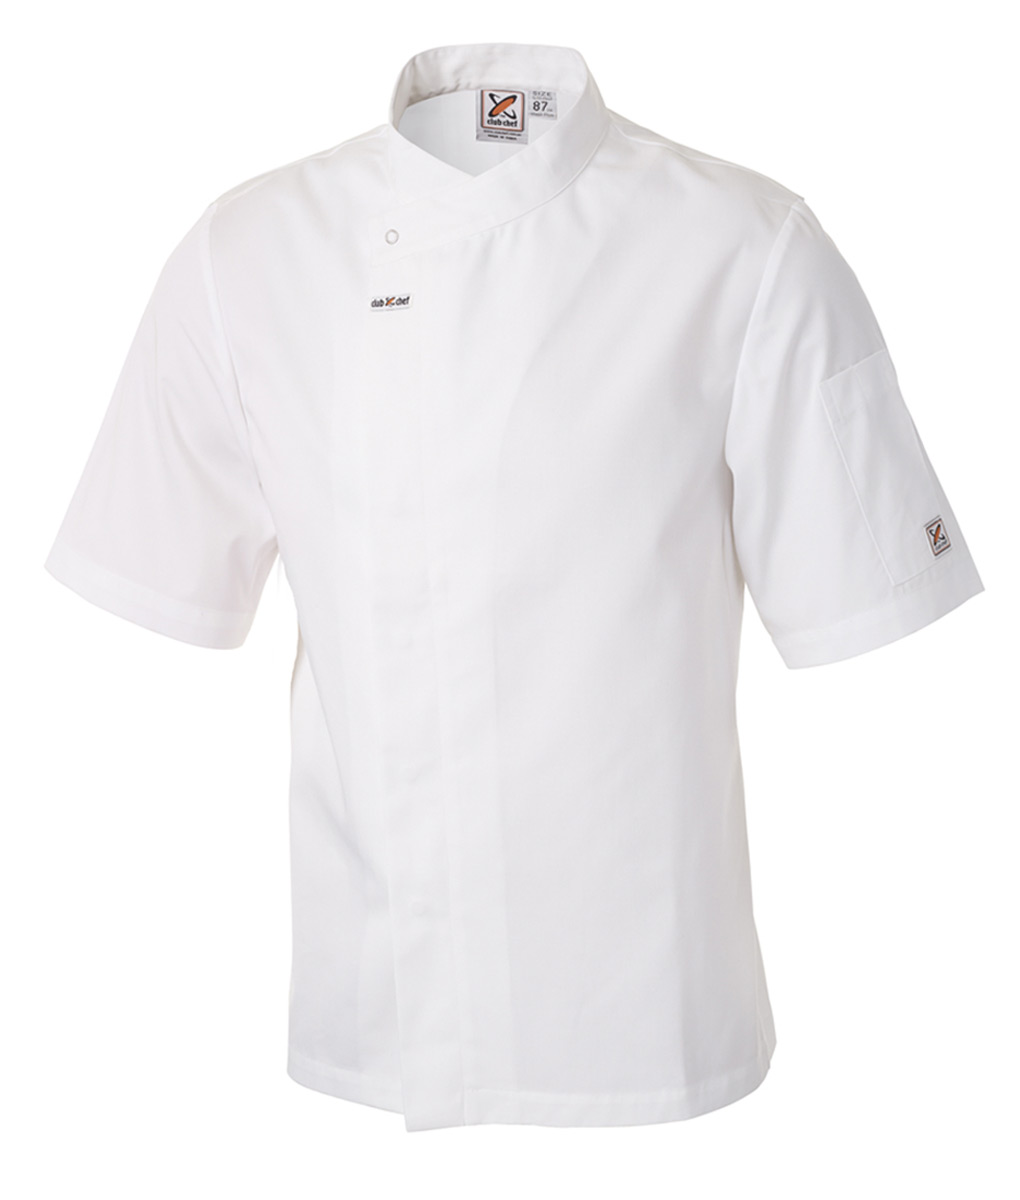 Food Preparation Chef Jacket Short Sleeves White by Club Chef